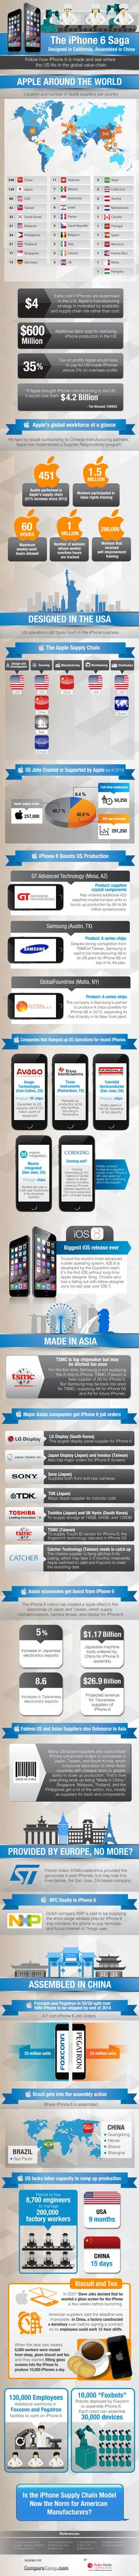 How iPhone Gets Made #infographic